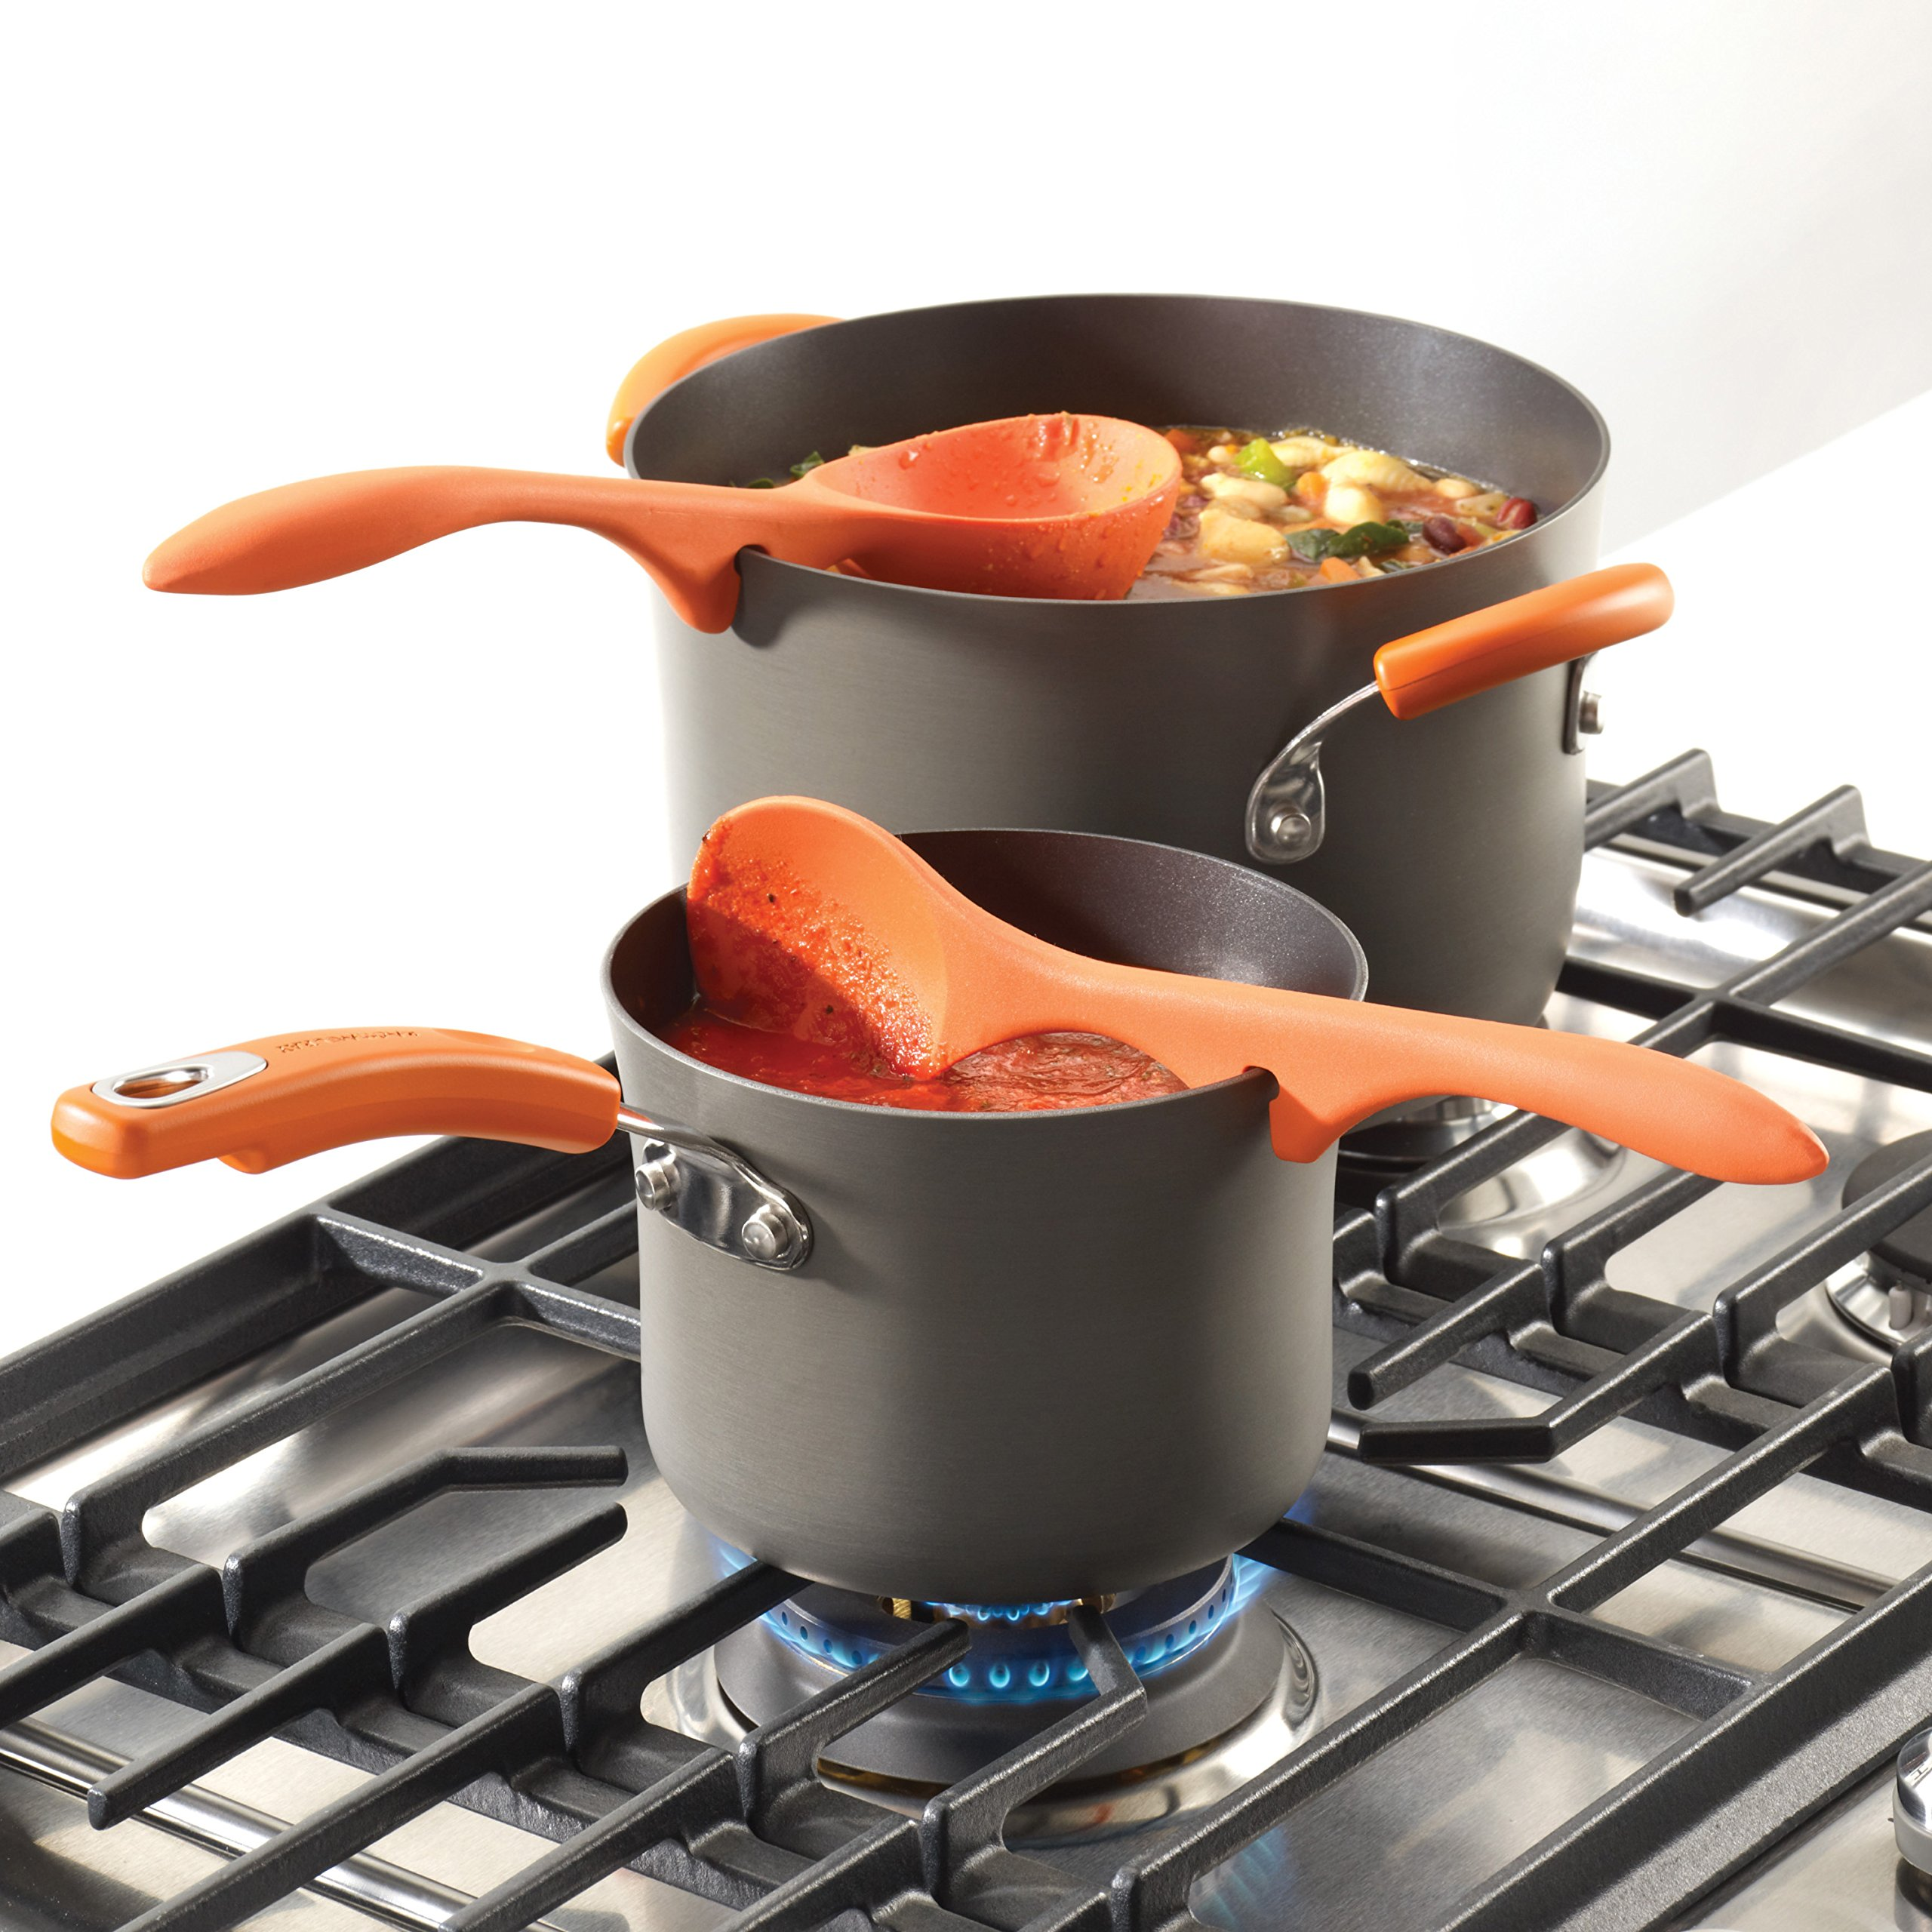 Rachael Ray Tools 2-Piece Lazy Spoon & Lazy Ladle Set, Orange by Rachael Ray (Image #3)